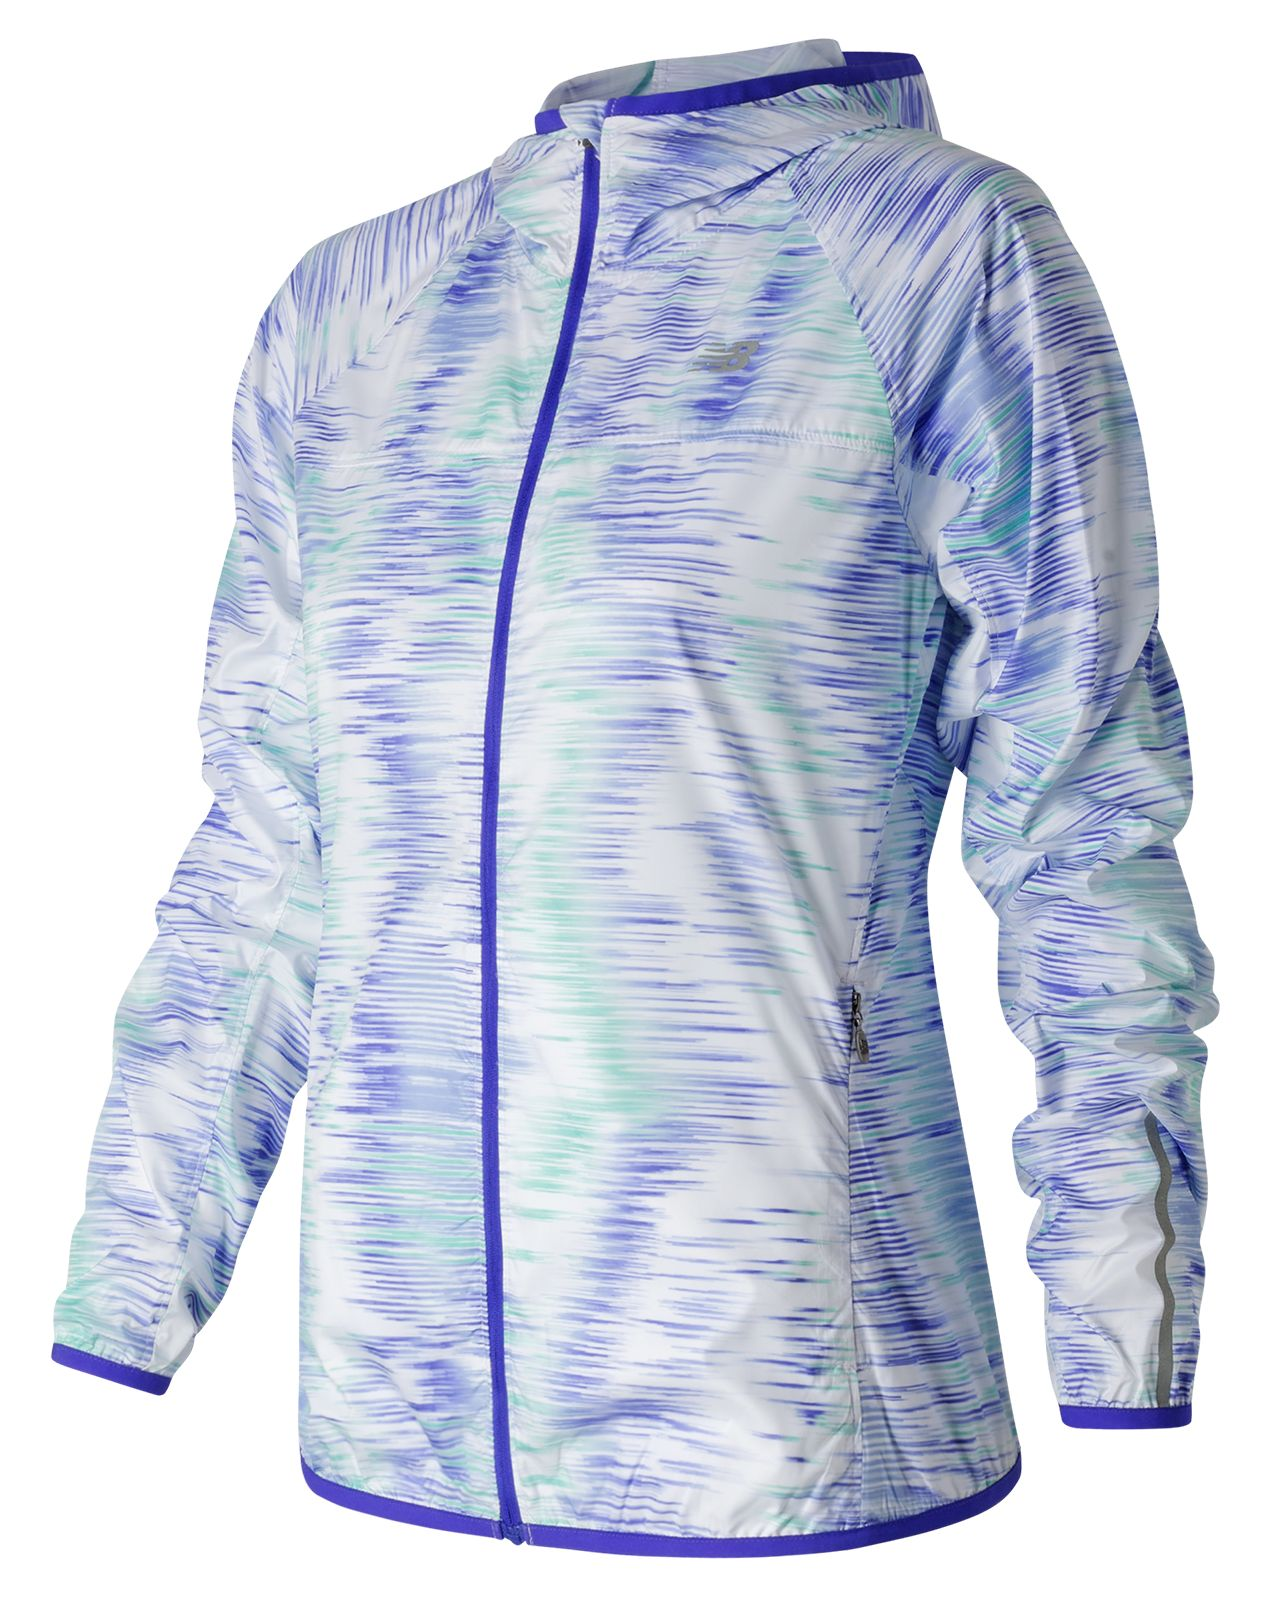 New Balance : Spectral Tech Windcheater Jacket : Women's Apparel : WJ53111SCP